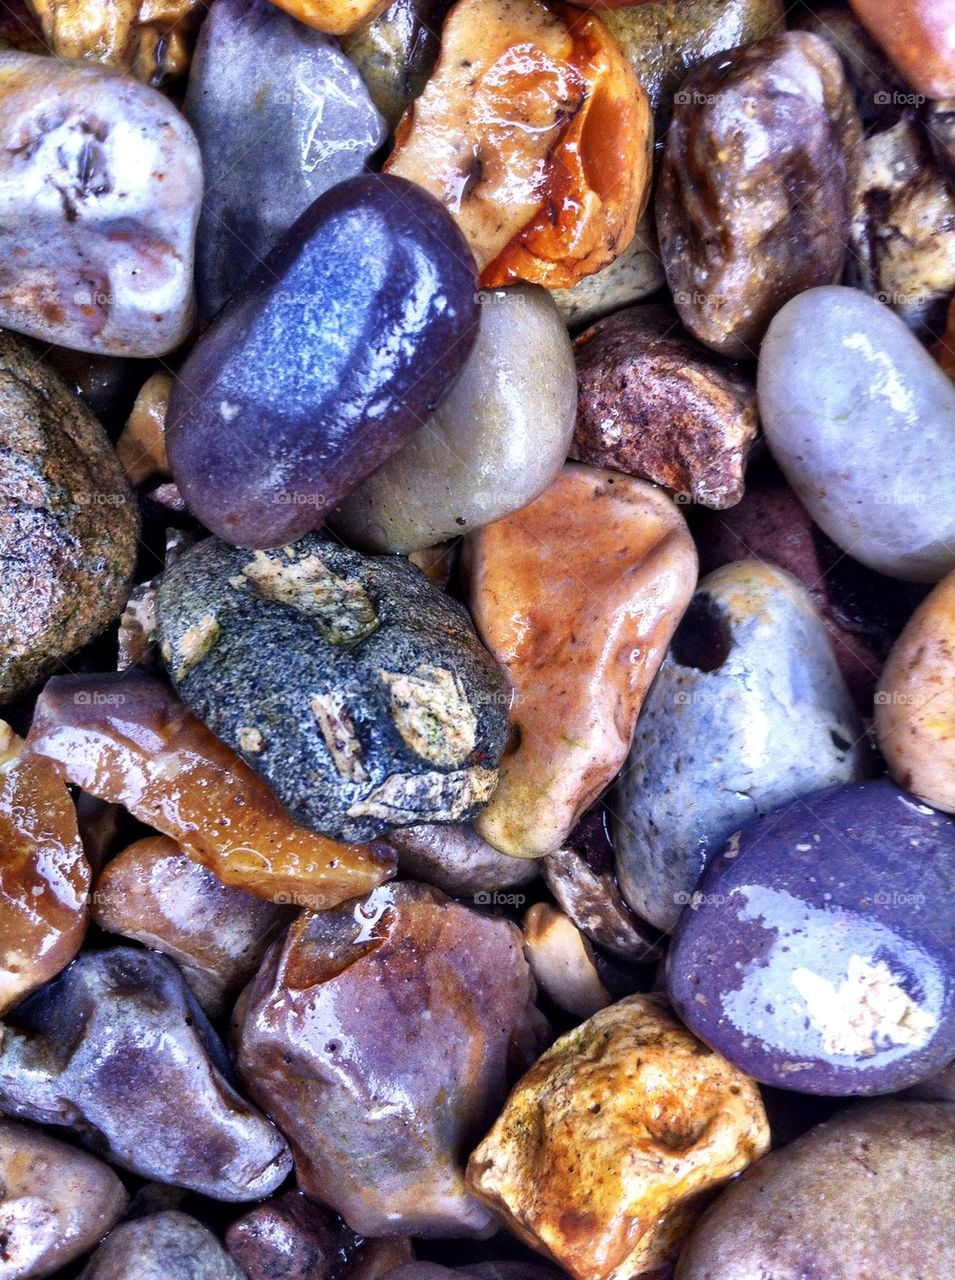 Wet stones at the beach.